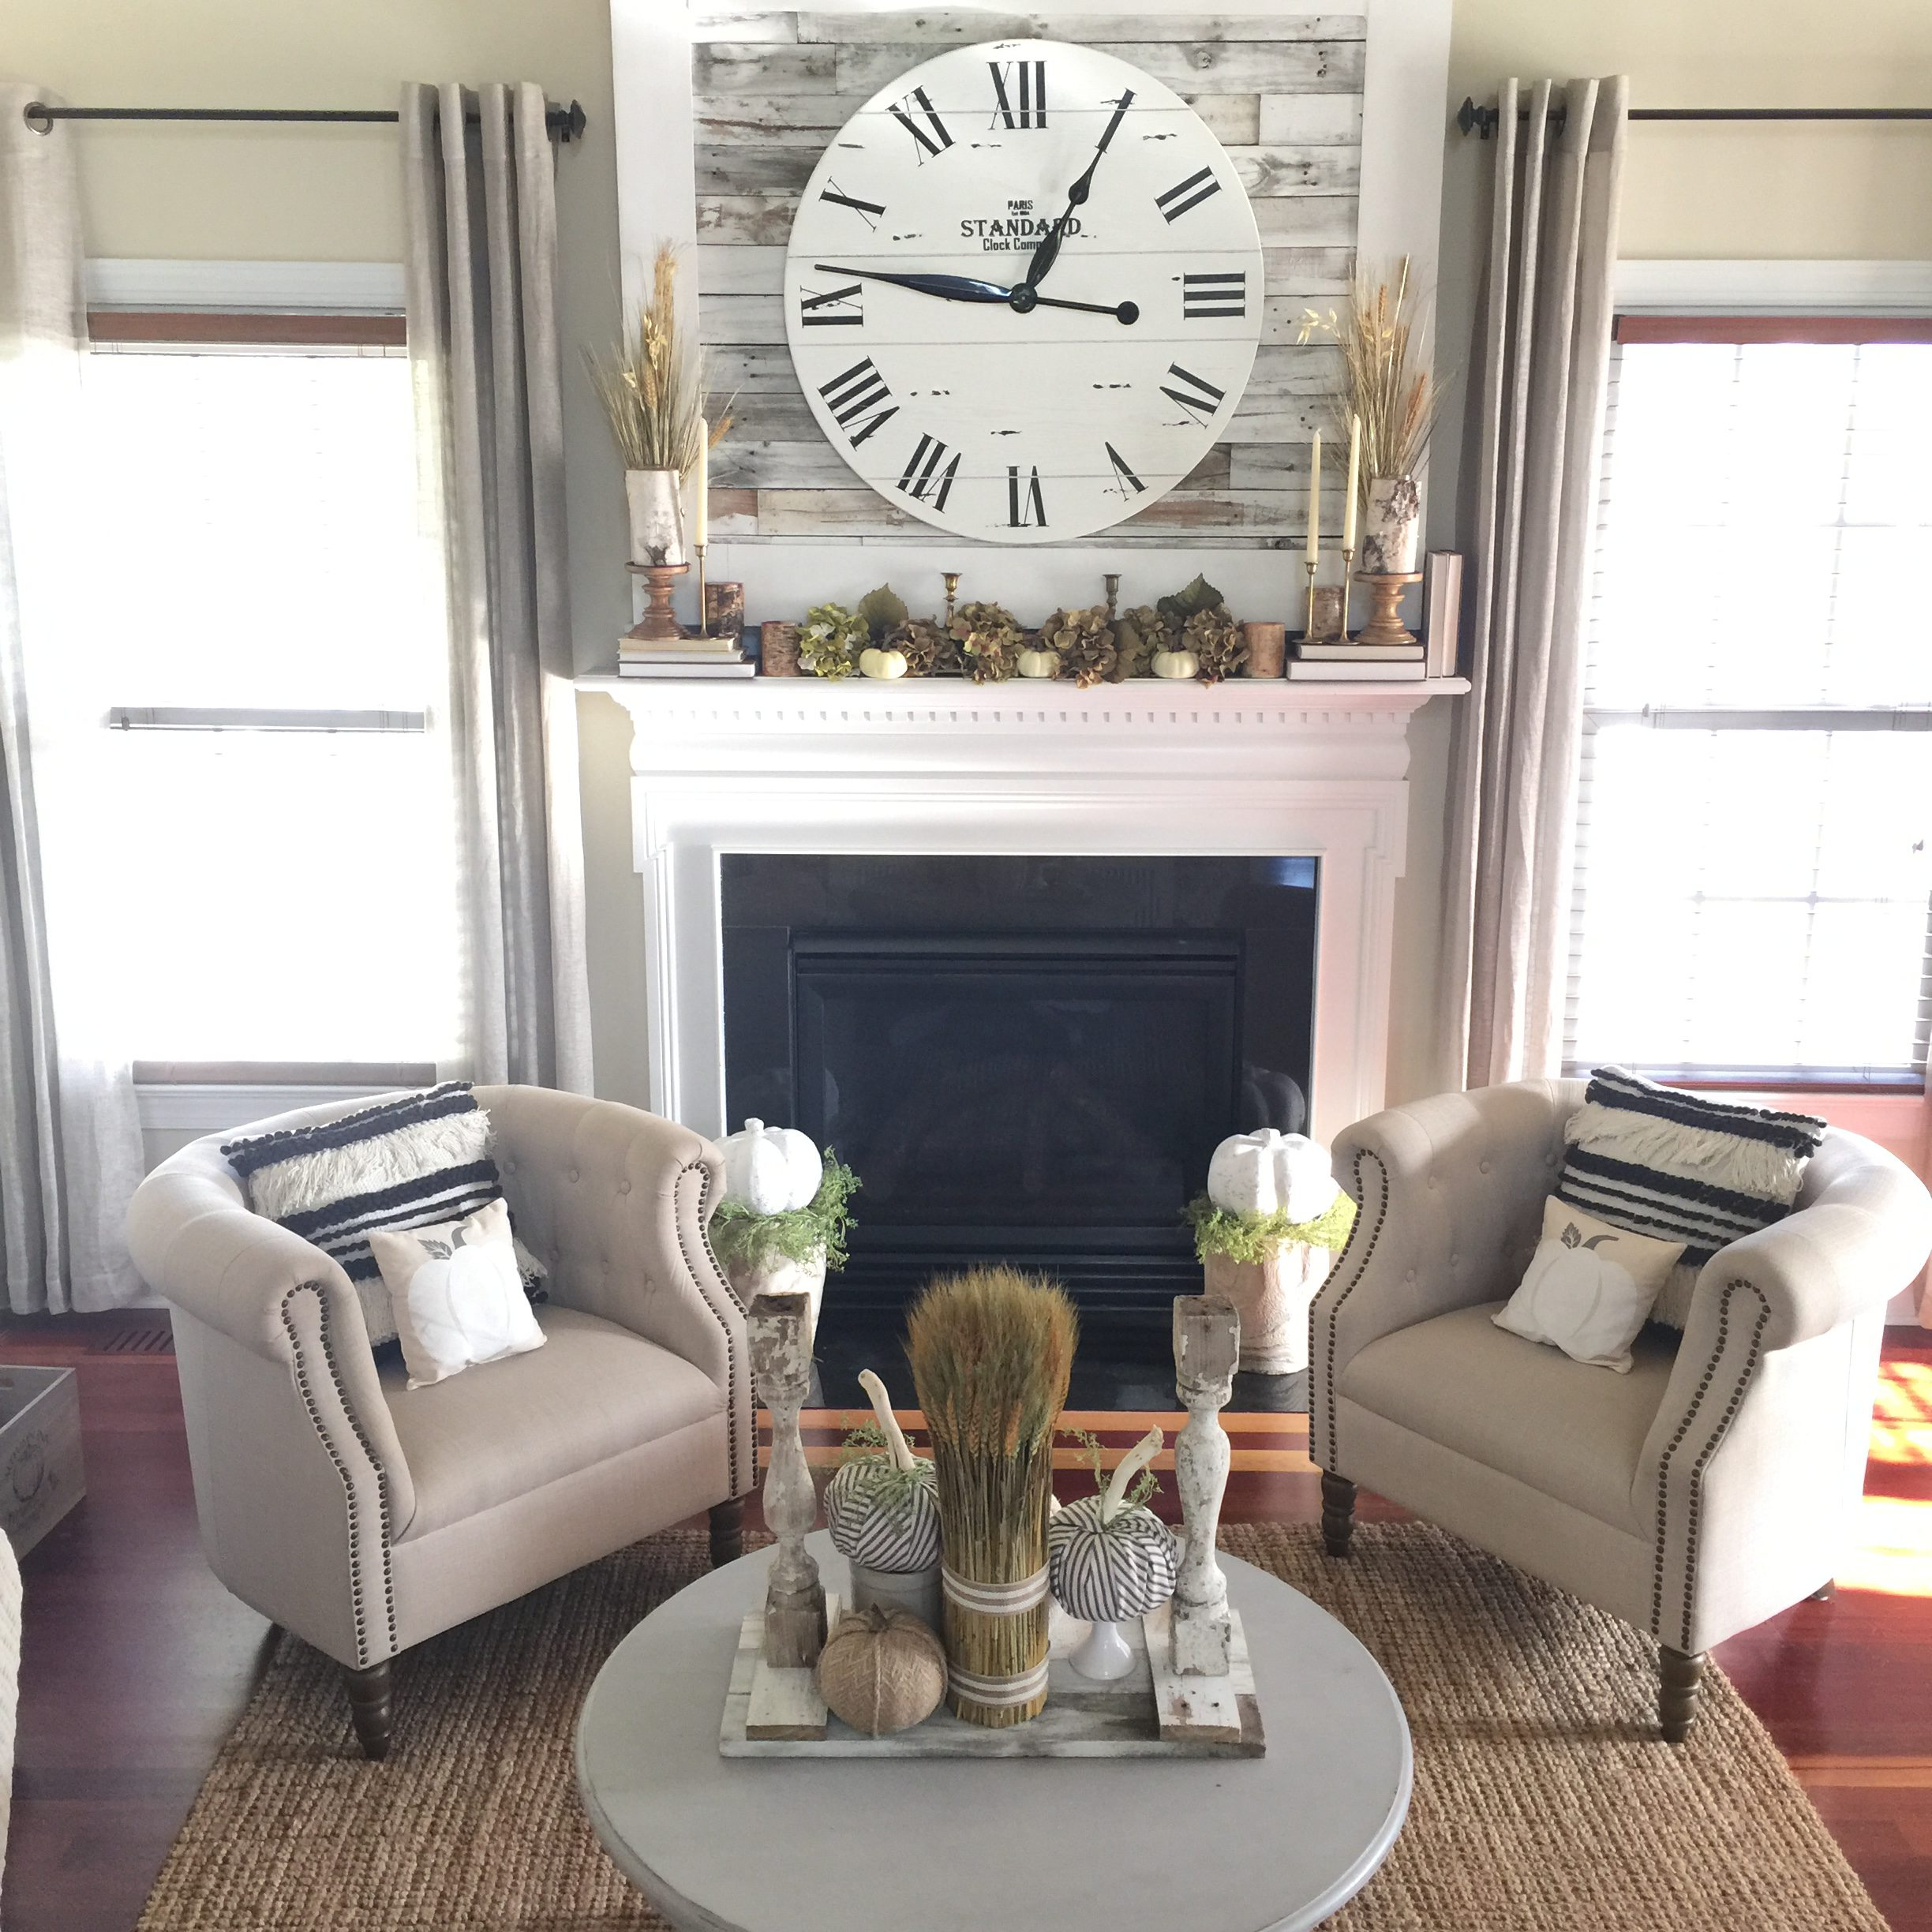 Gorgeous cottage living room fall living room farmhouse fall decorating idea wheat stalks